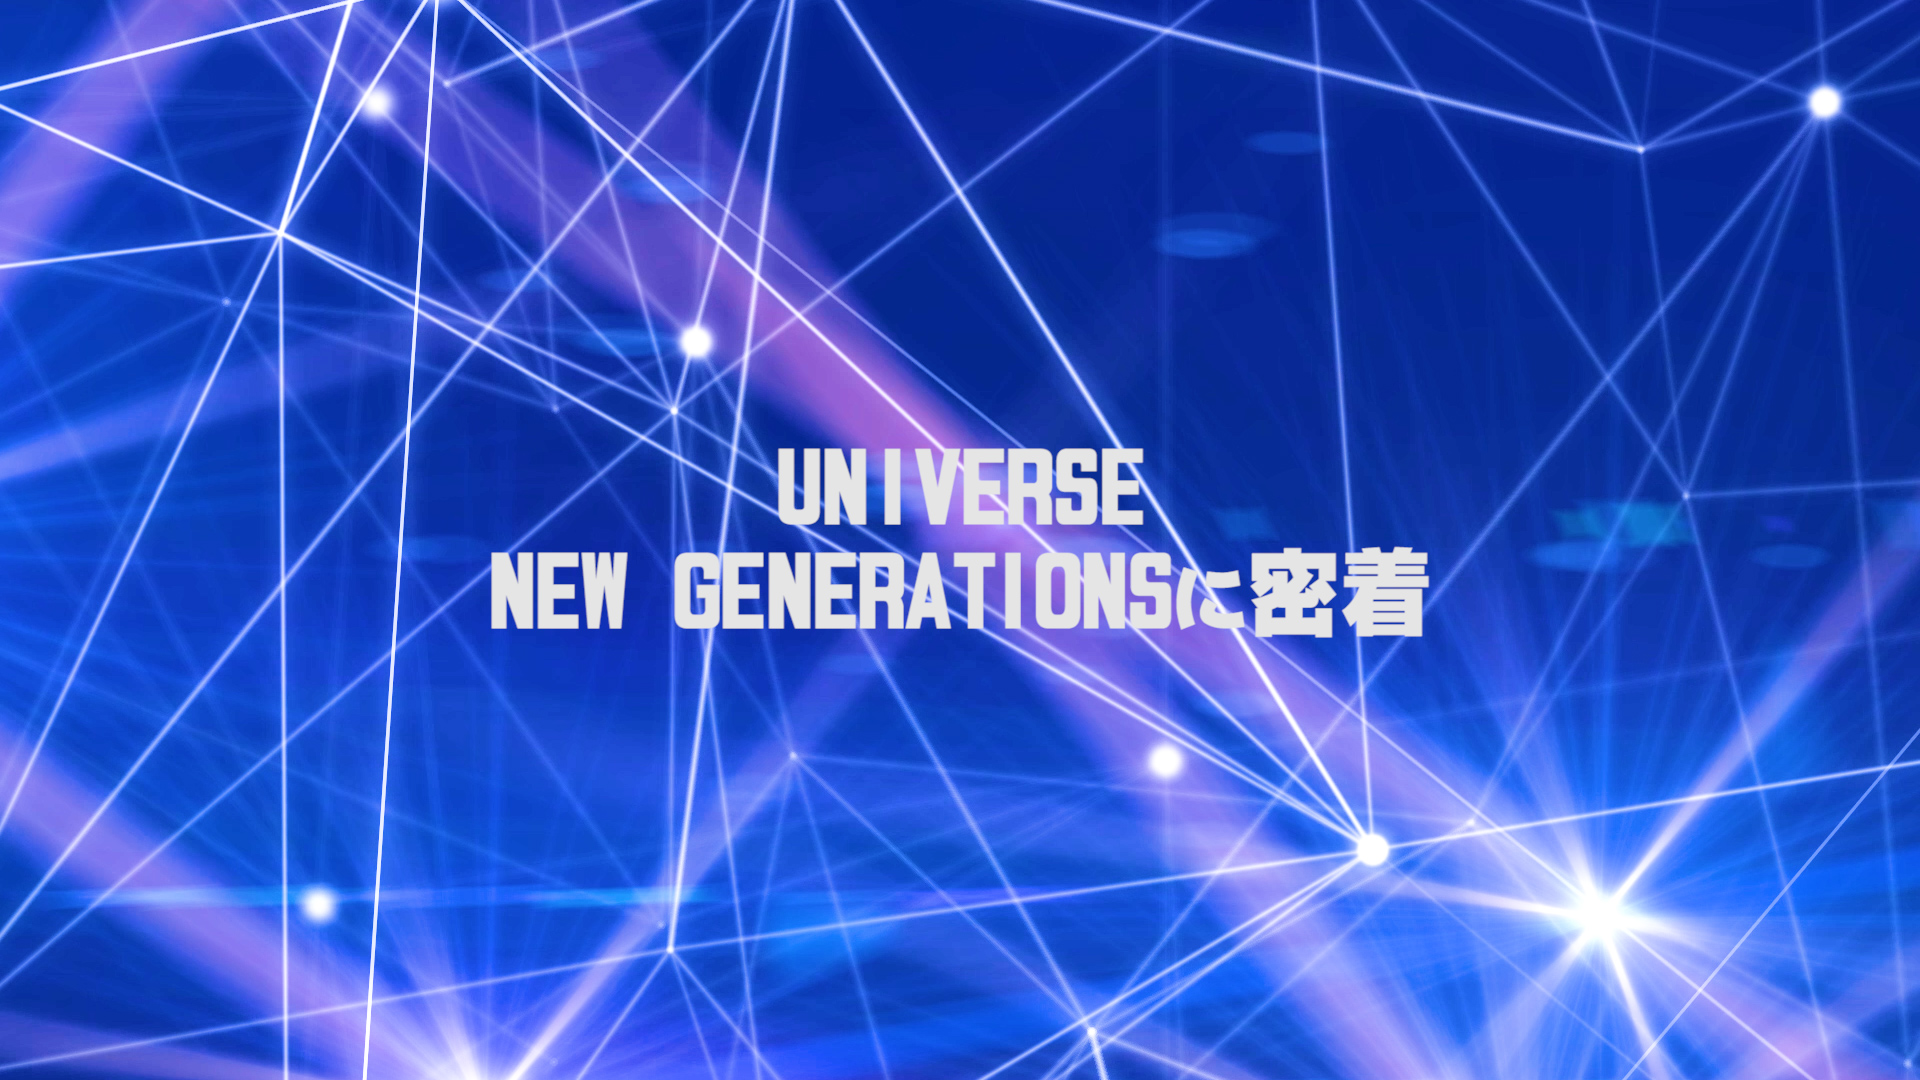 UNIVERSE NEW GENERATIONSに密着